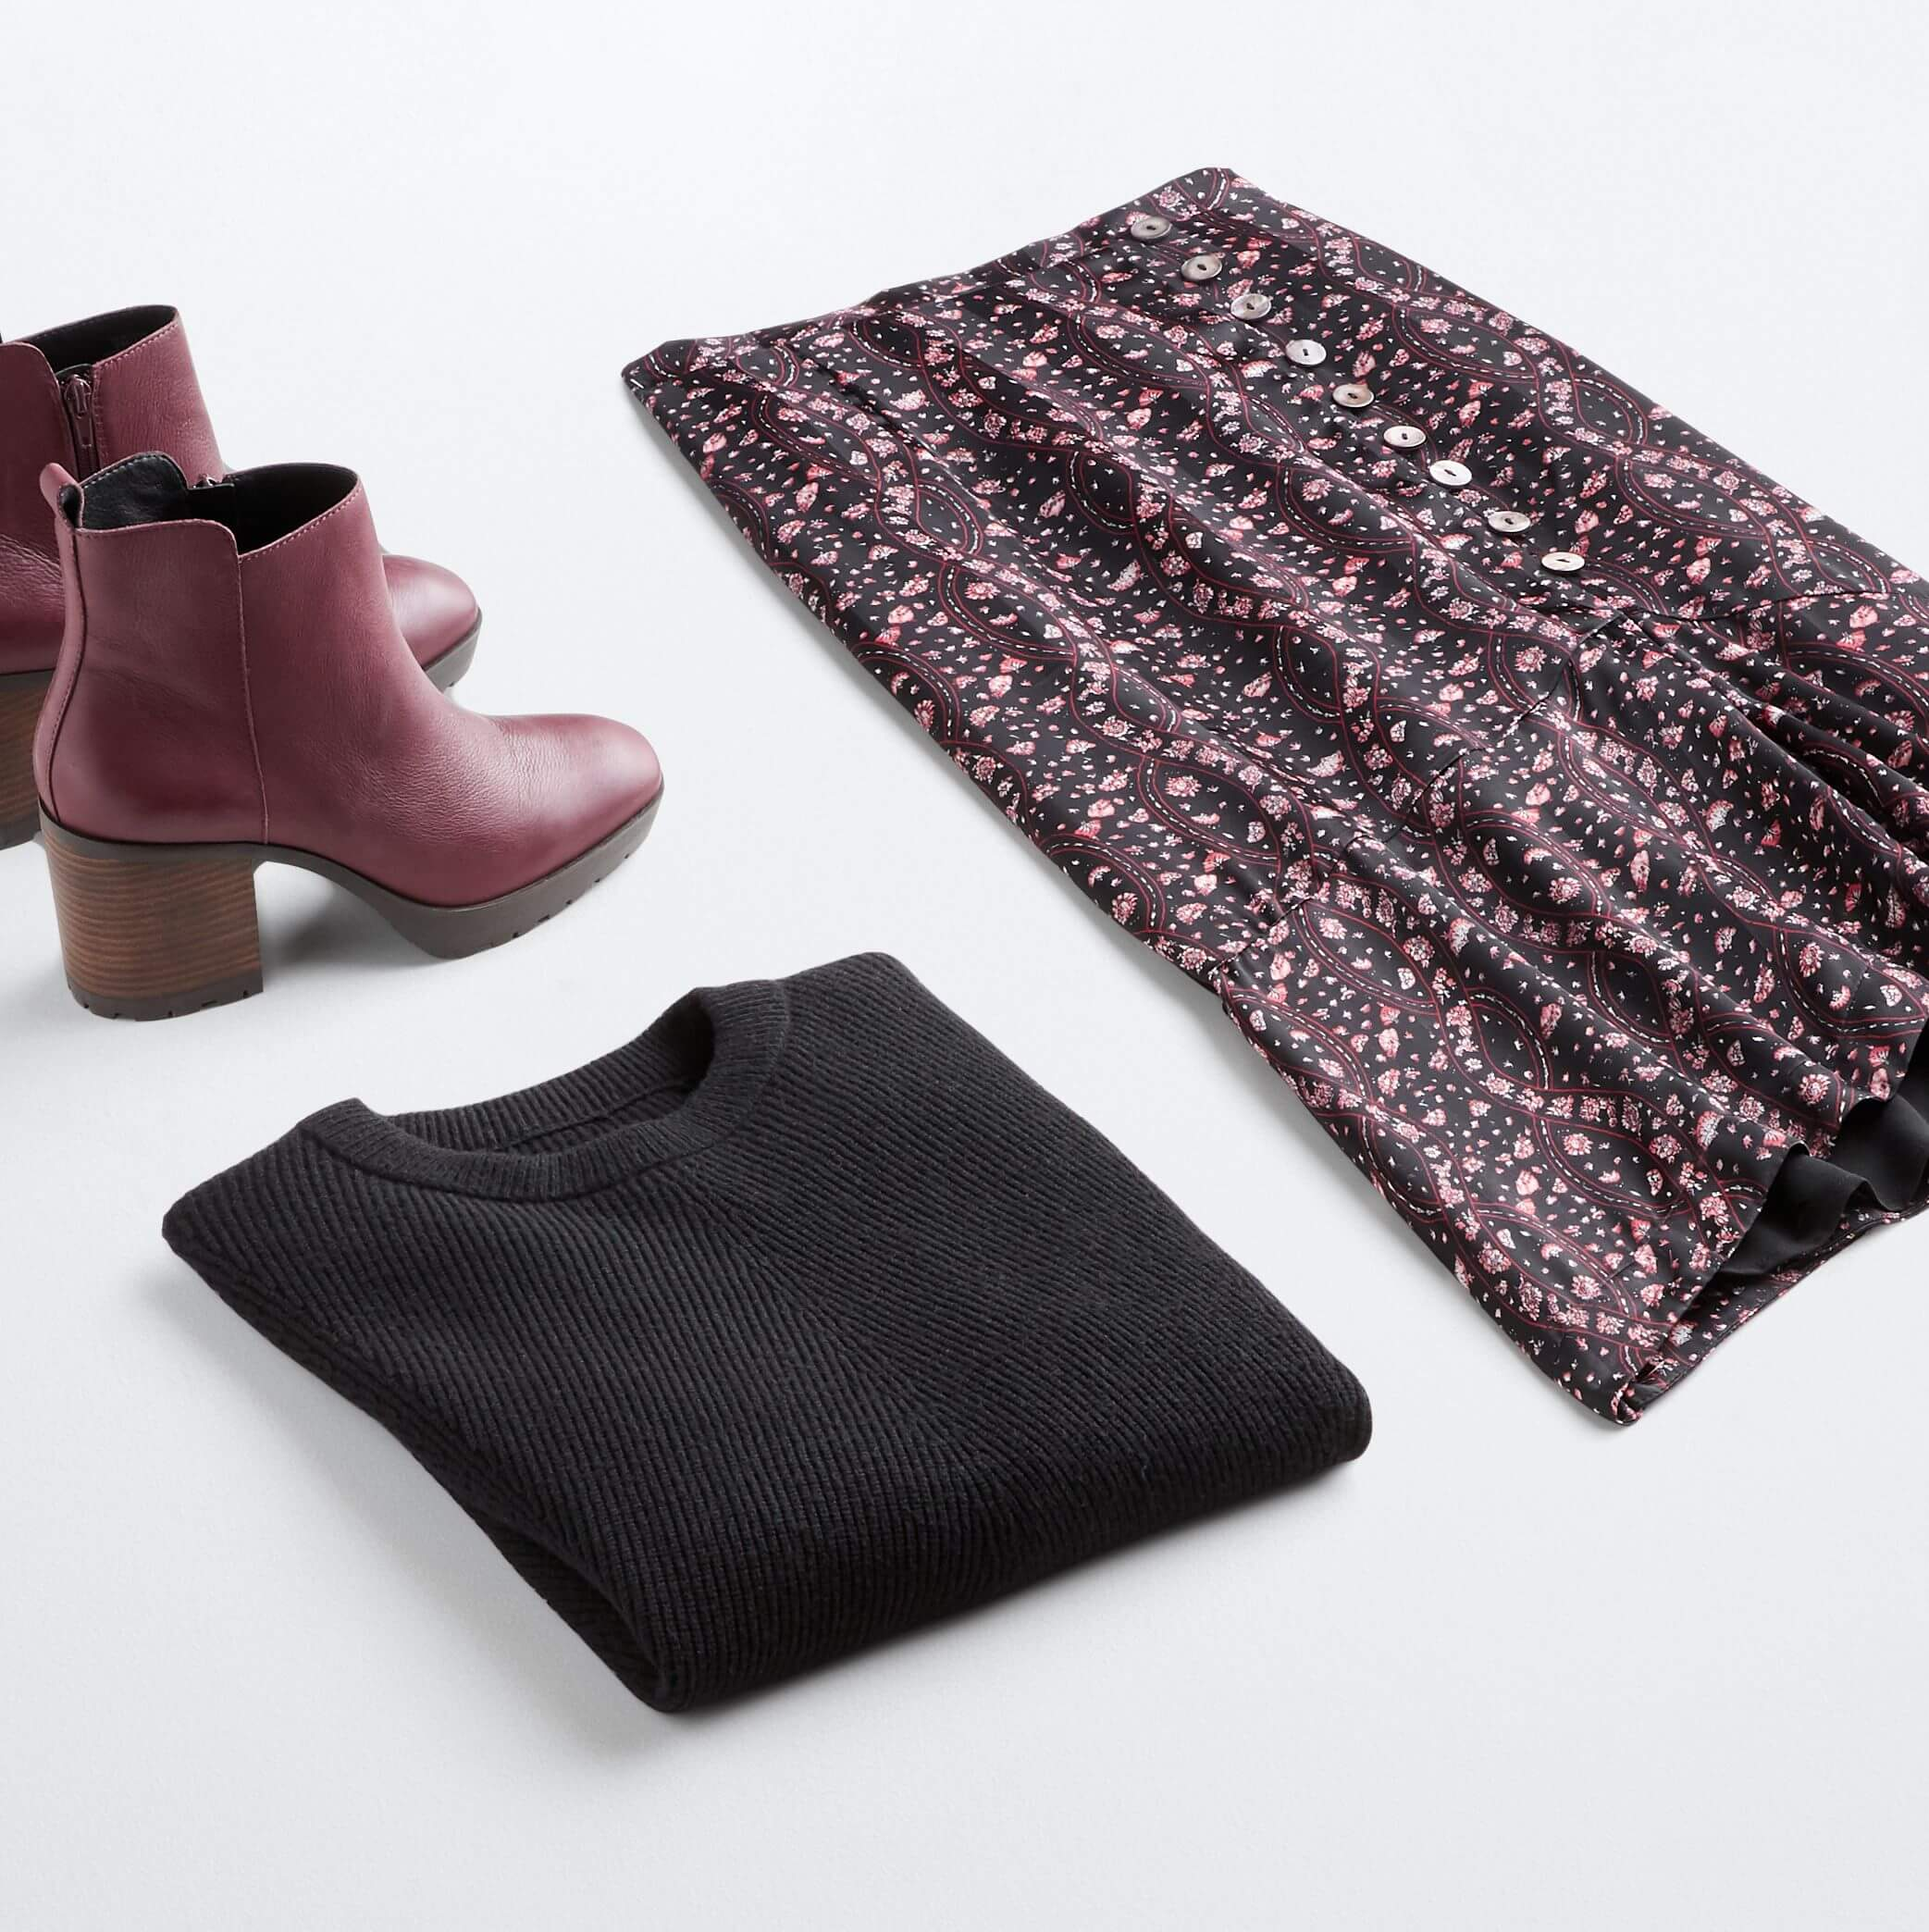 Stitch Fix Women's outfit laydown featuring purple floral skirt, black pullover sweater and purple heeled booties.